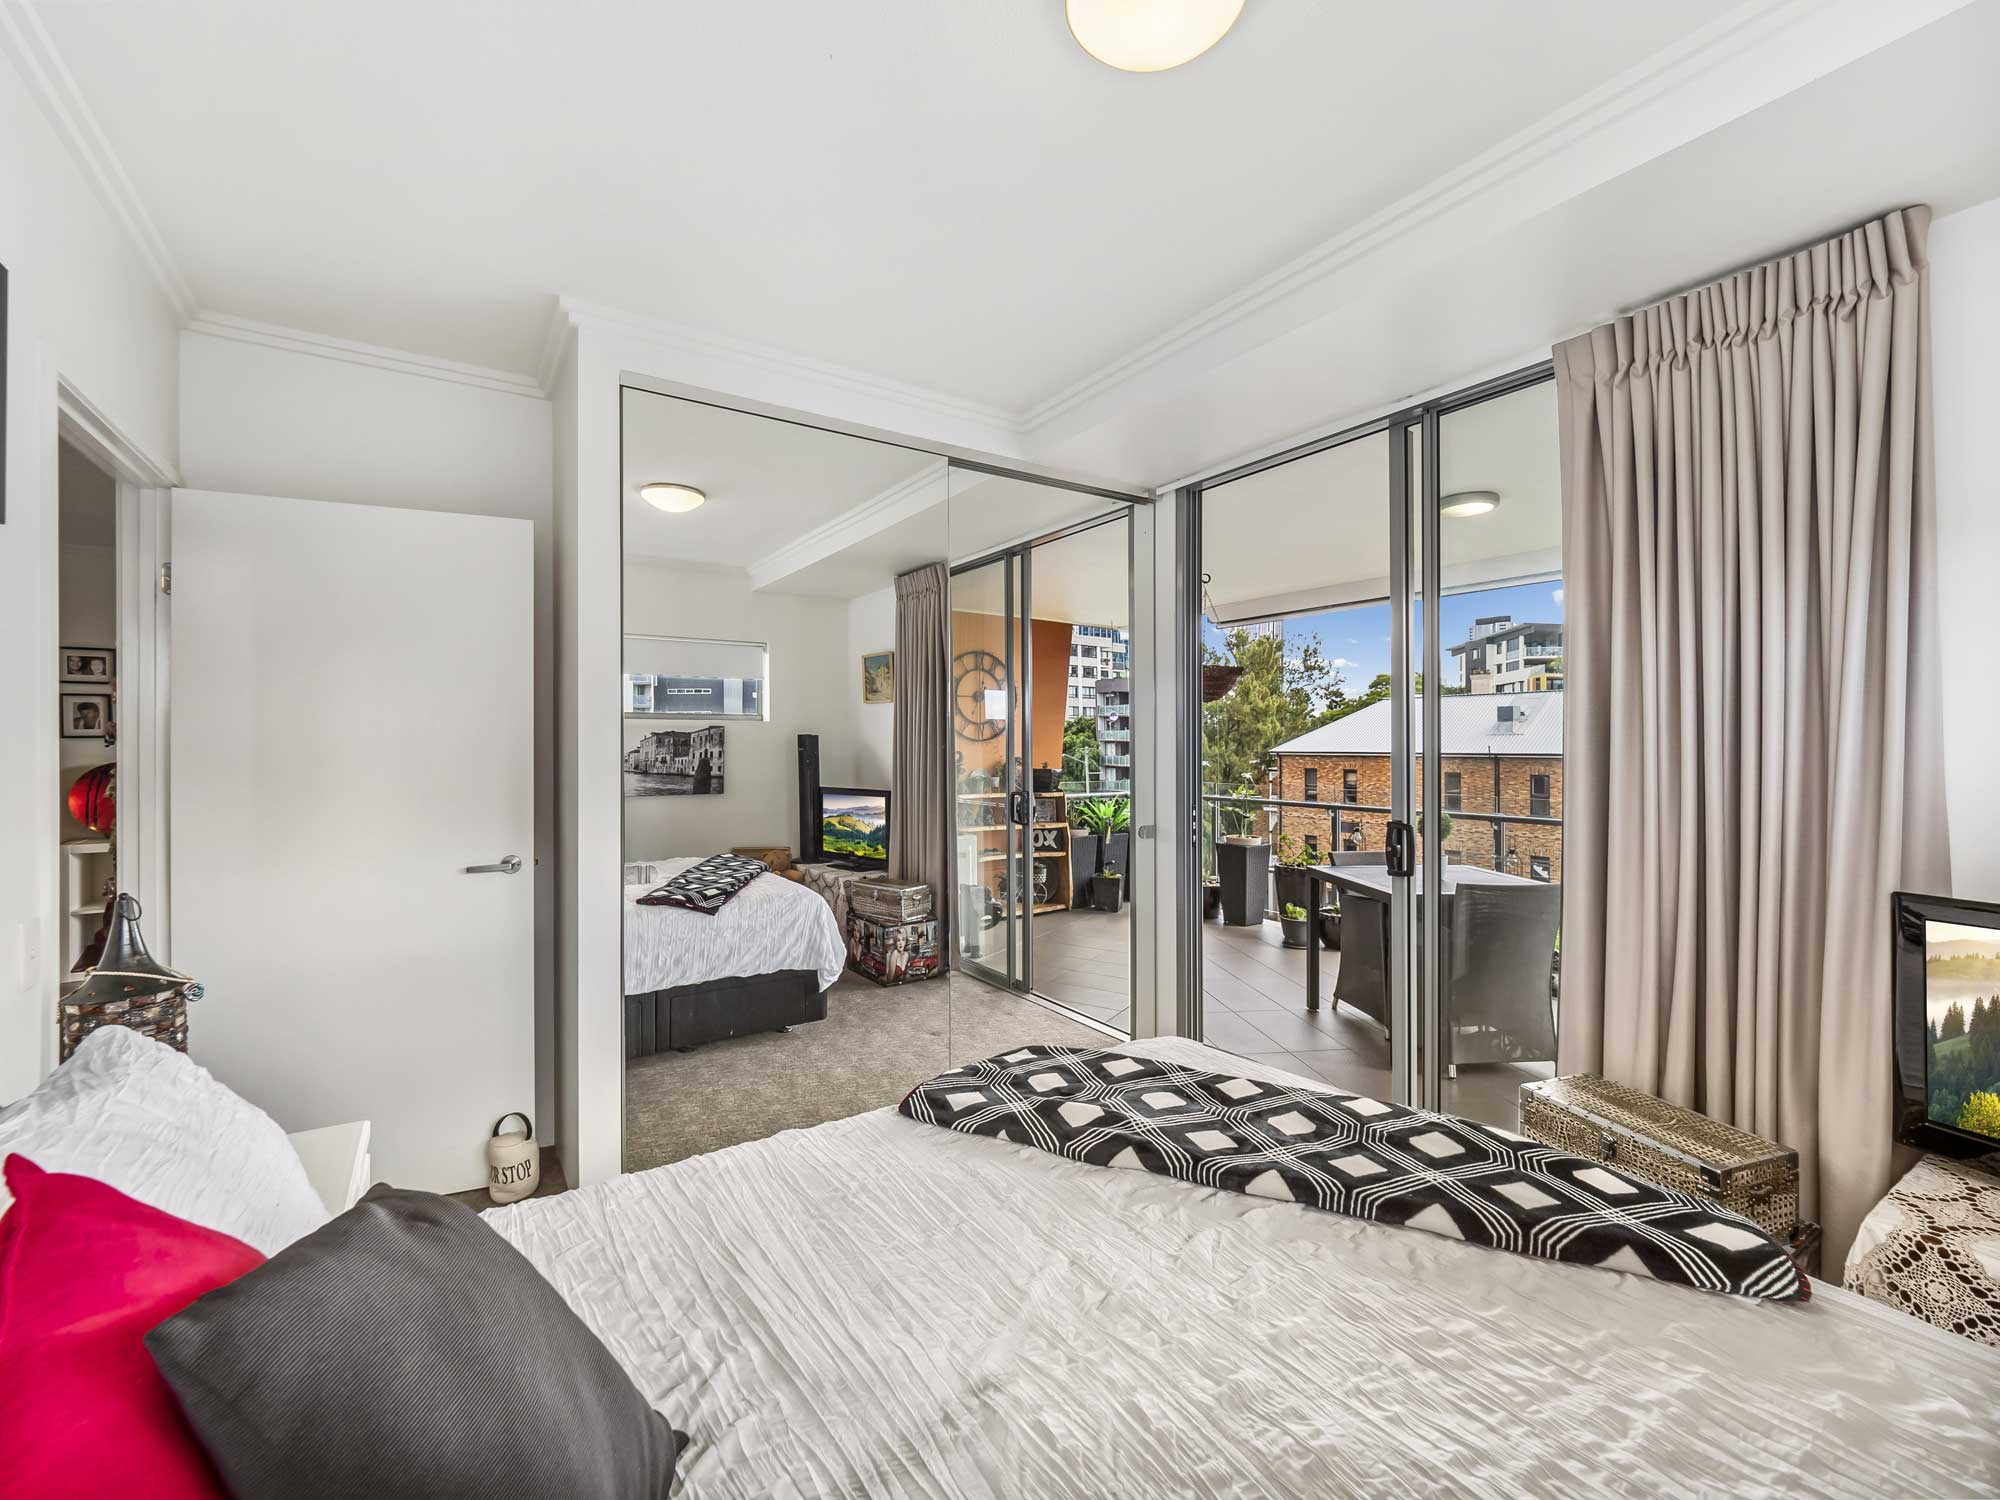 Real estate photography of Kangaroo Point apartment for sale - the bedroom